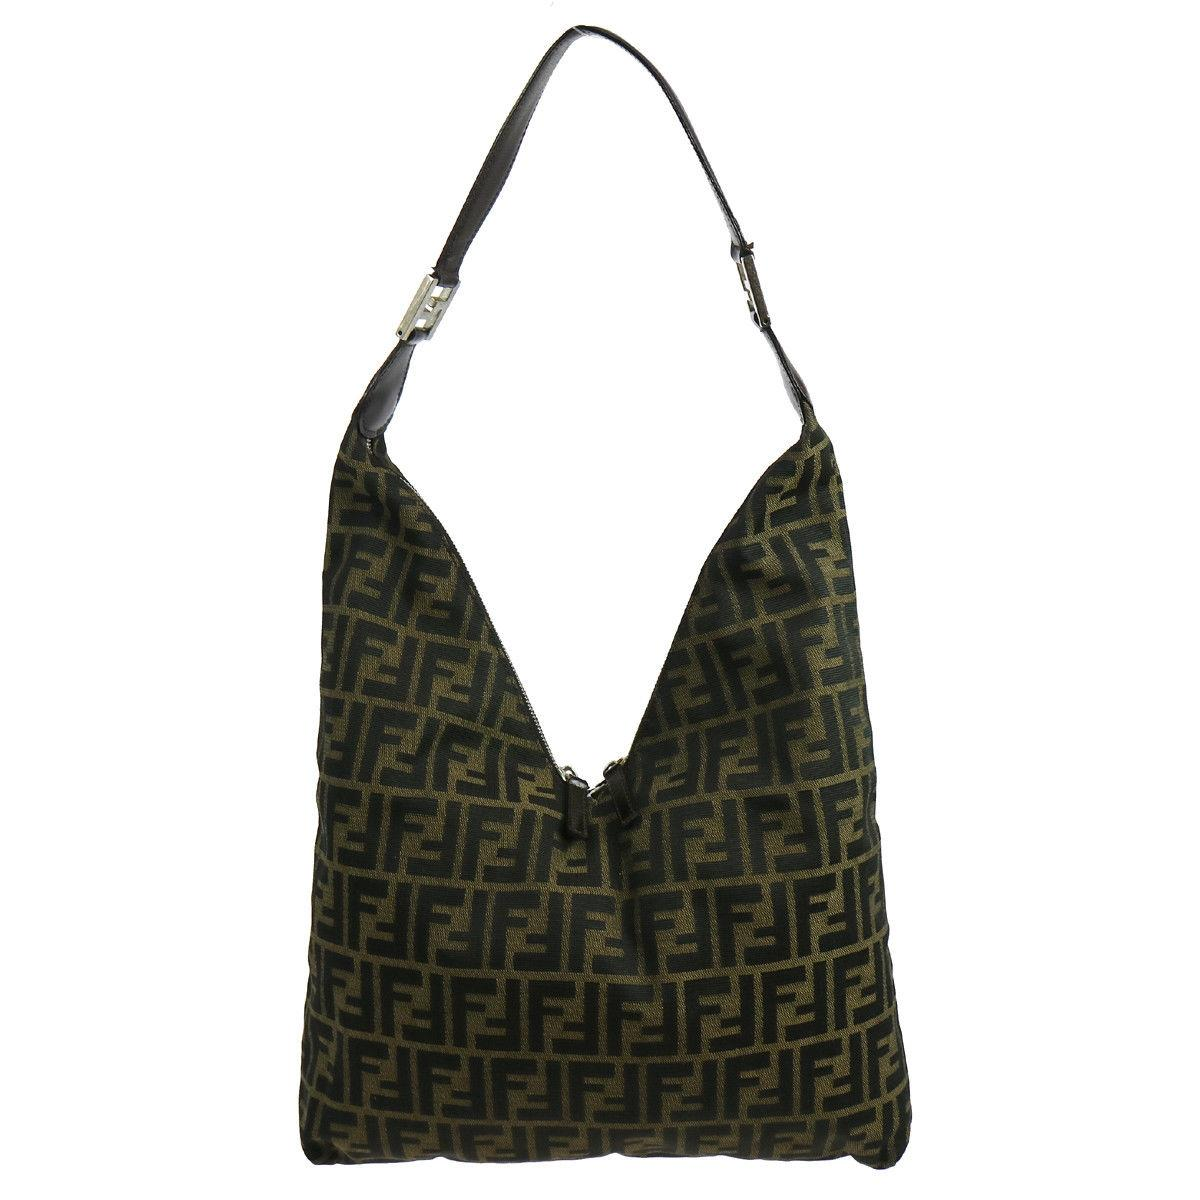 7dfe1ae2d52f promo code for fendi zucca brown canvas hobo bag tradesy c27aa 4b594